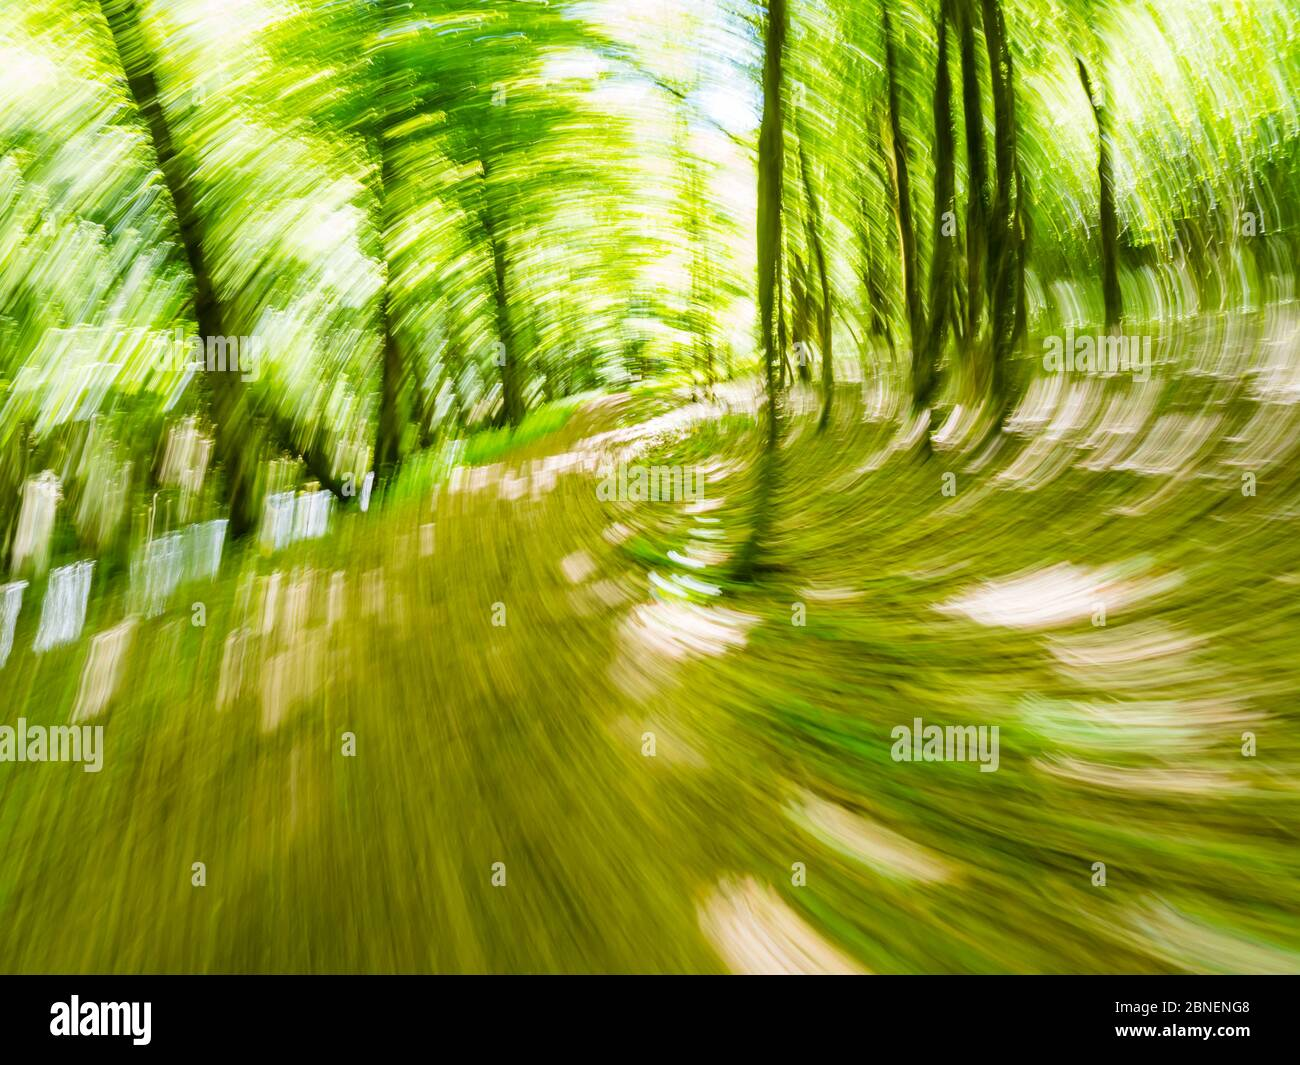 Green forest run intentionally blurry representing maximum utmost speed speedy fast movement trees and branches leaves Stock Photo